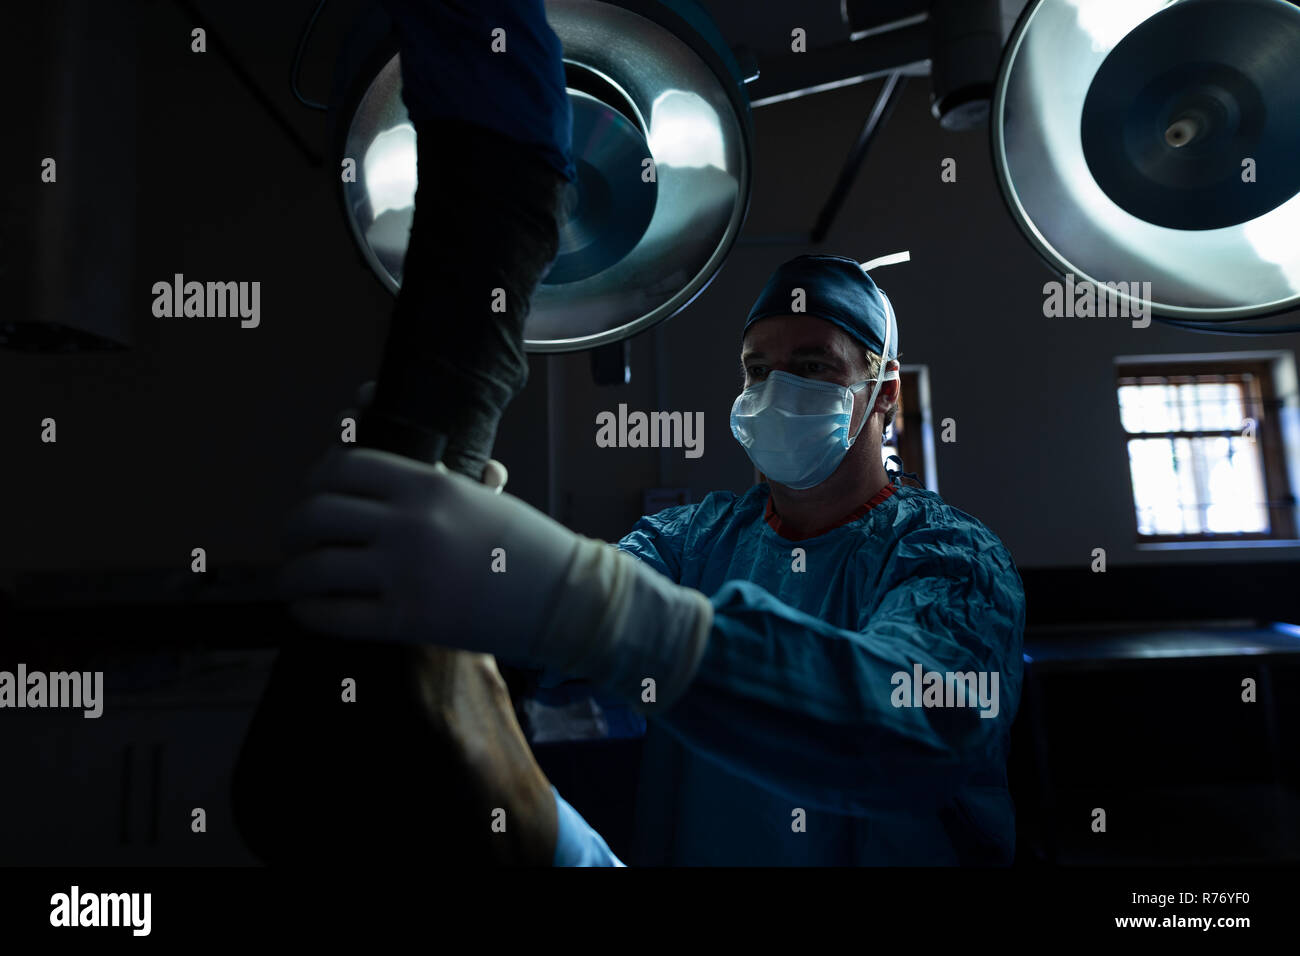 Surgeon operating a horse in operation theatre - Stock Image